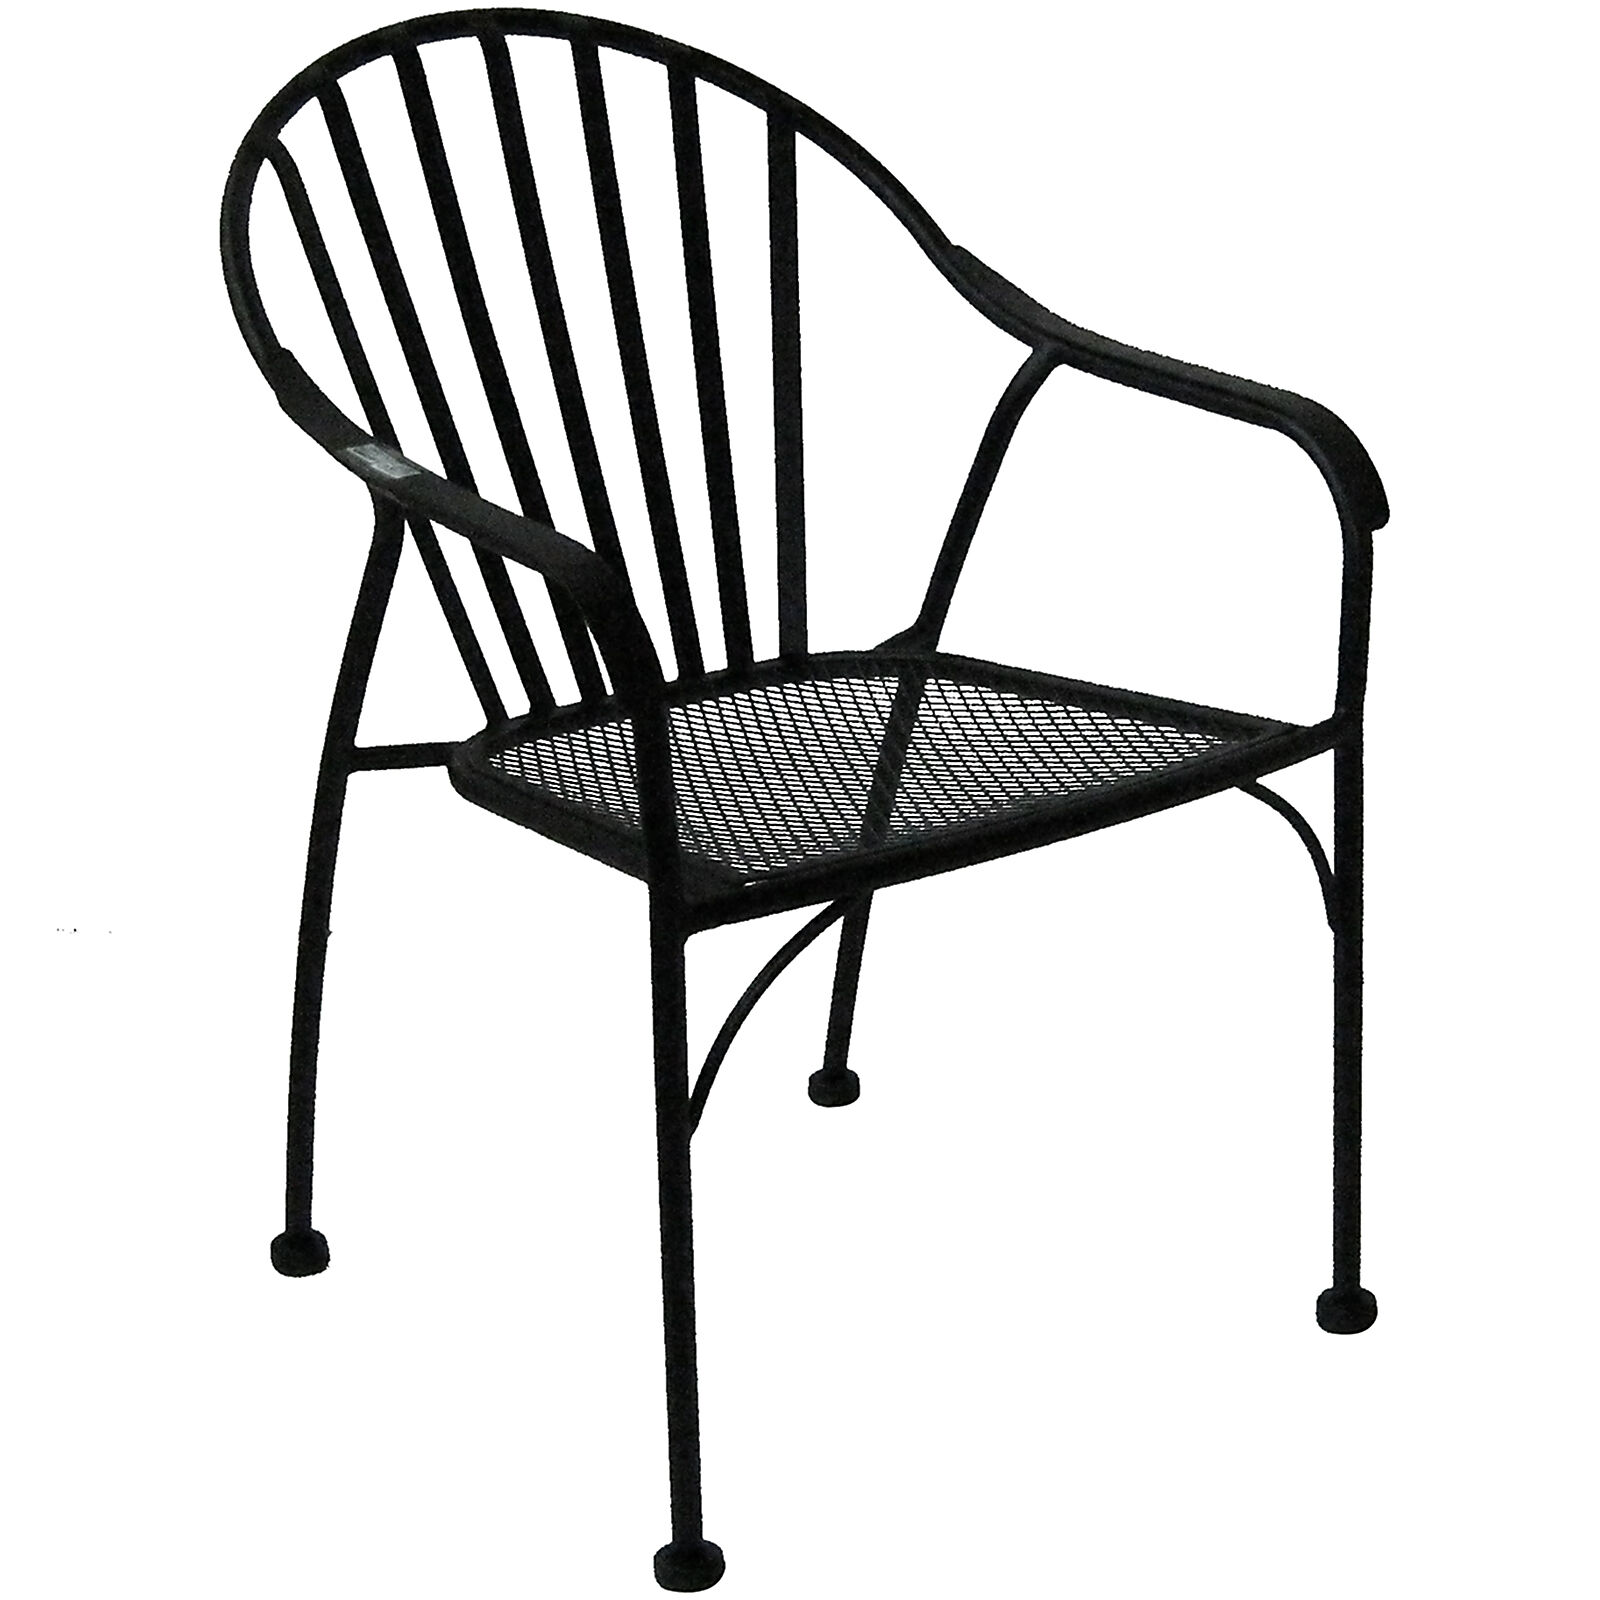 black metal patio chairs pilates ball chair wrought iron slat at home images